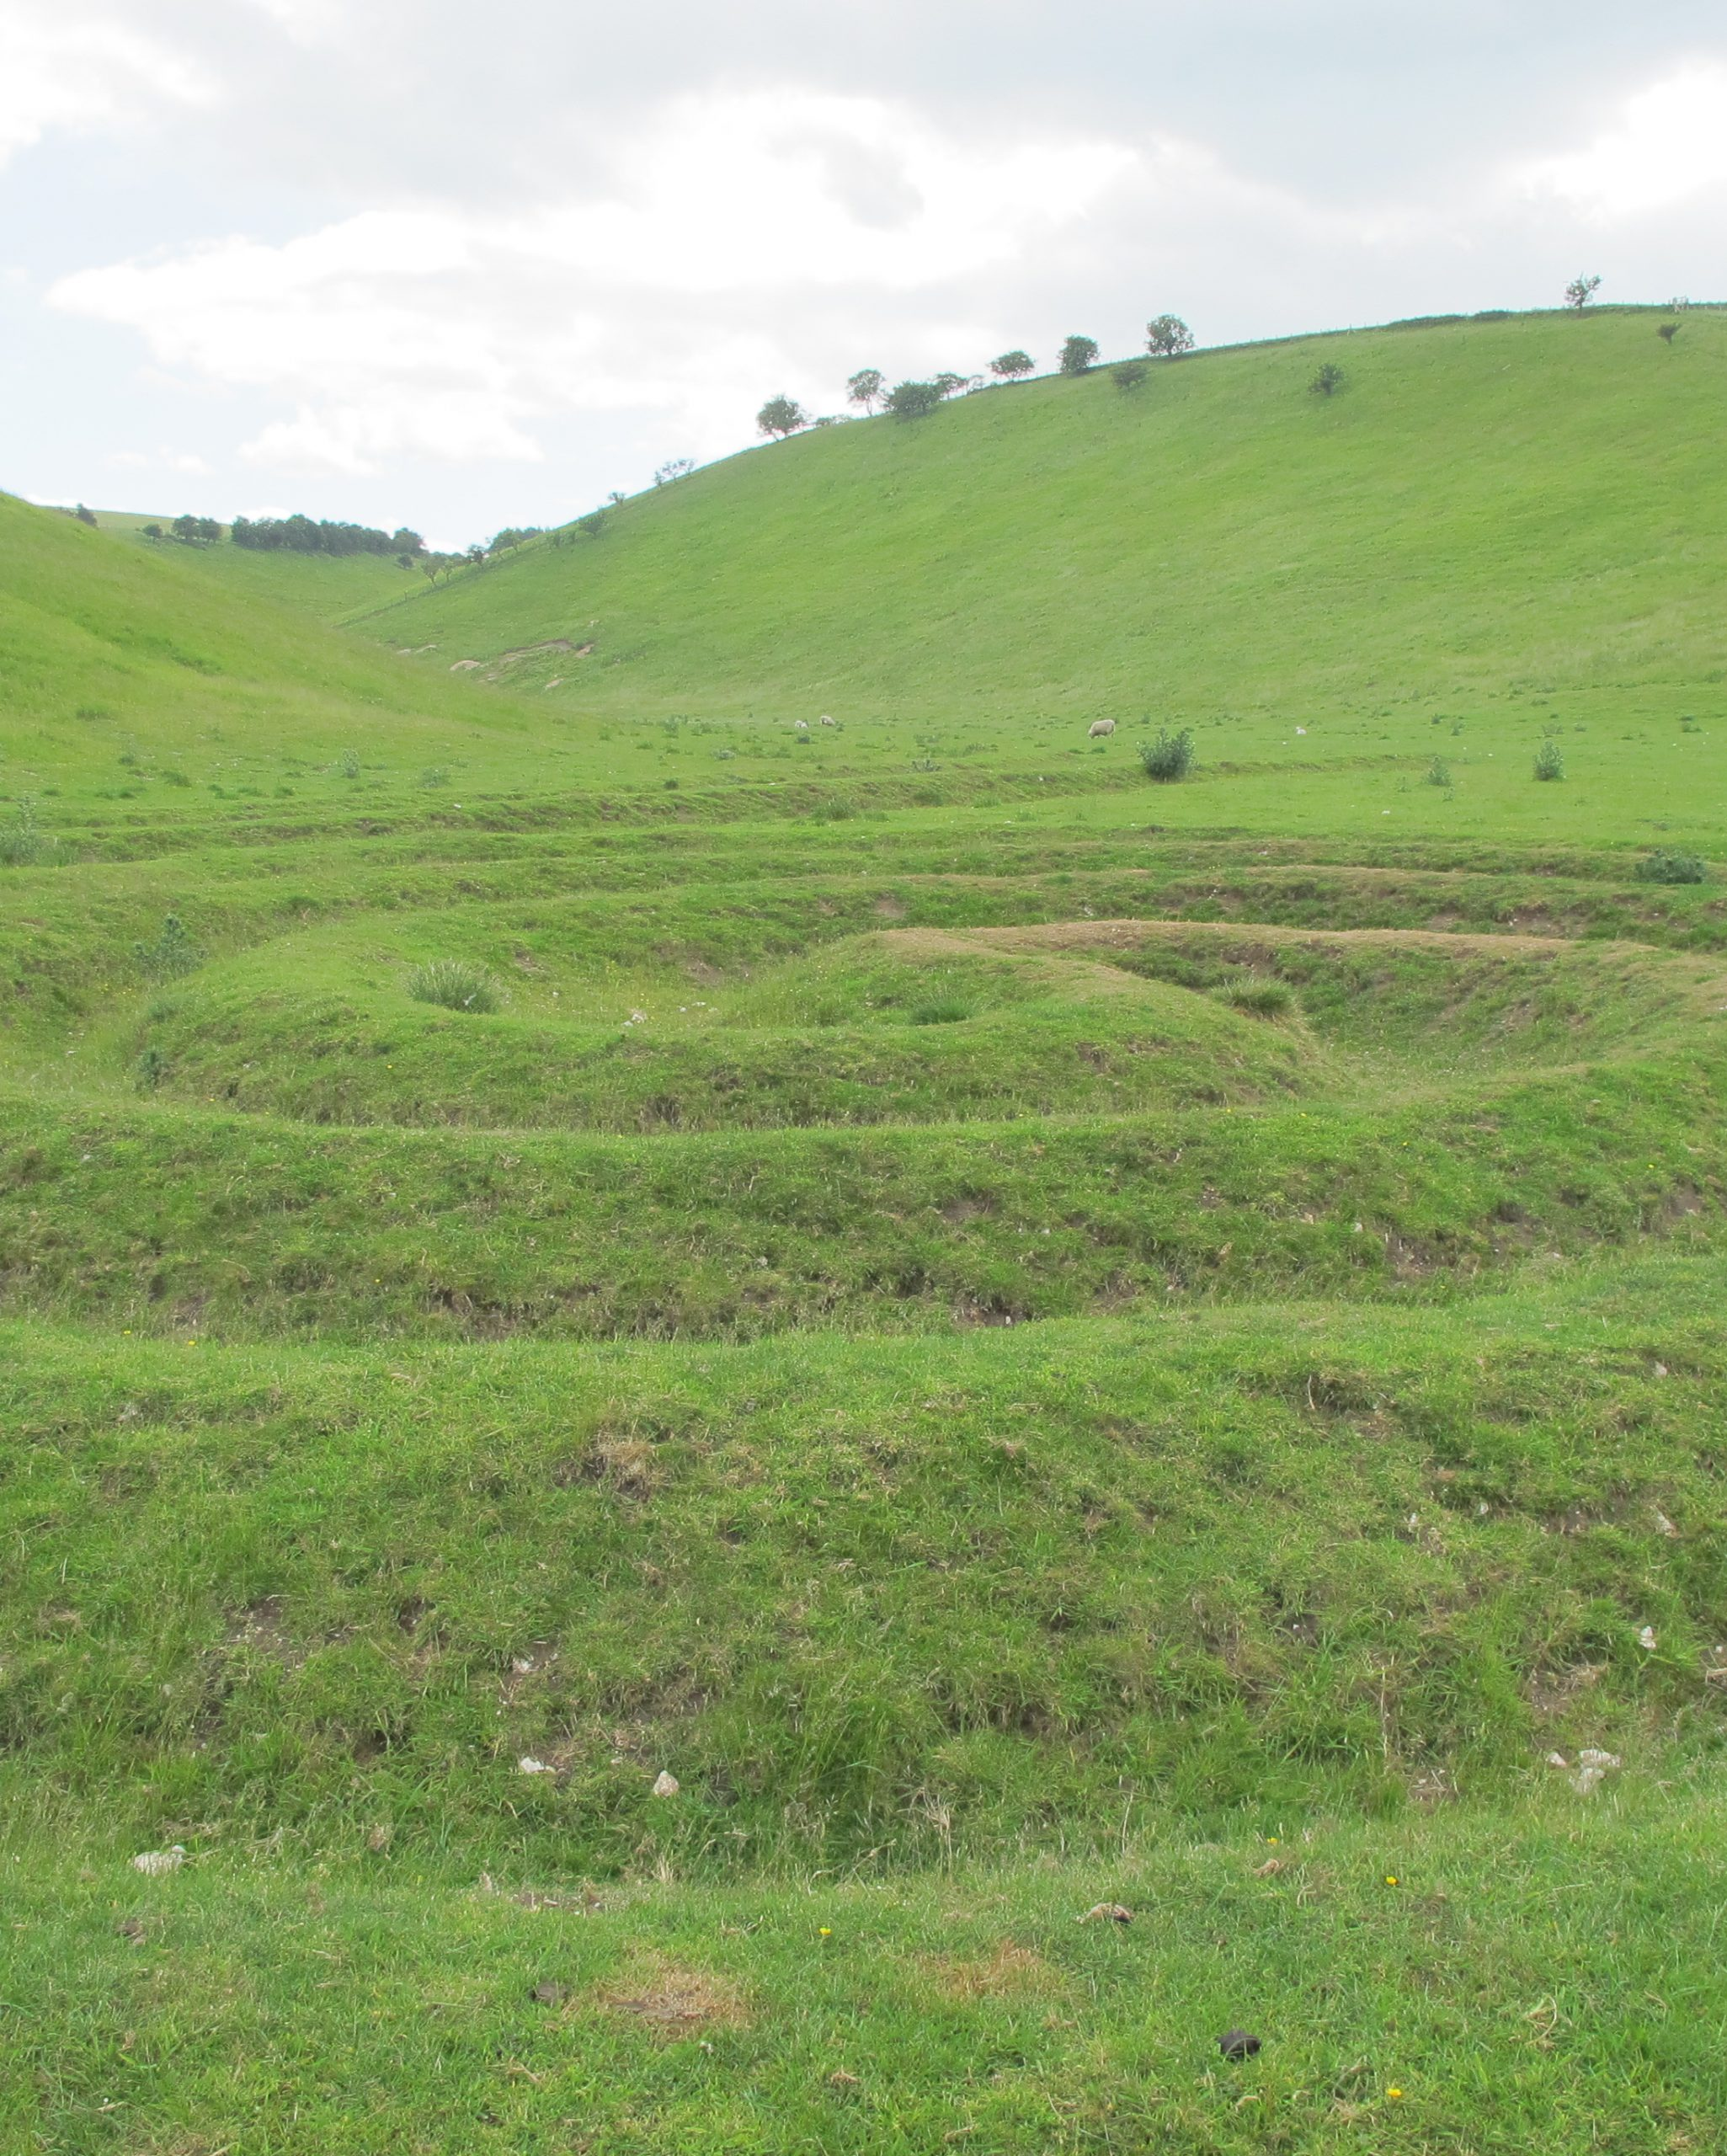 The artist Chris Drury was commissioned to create a new work of art Waves and Time in Thixendale